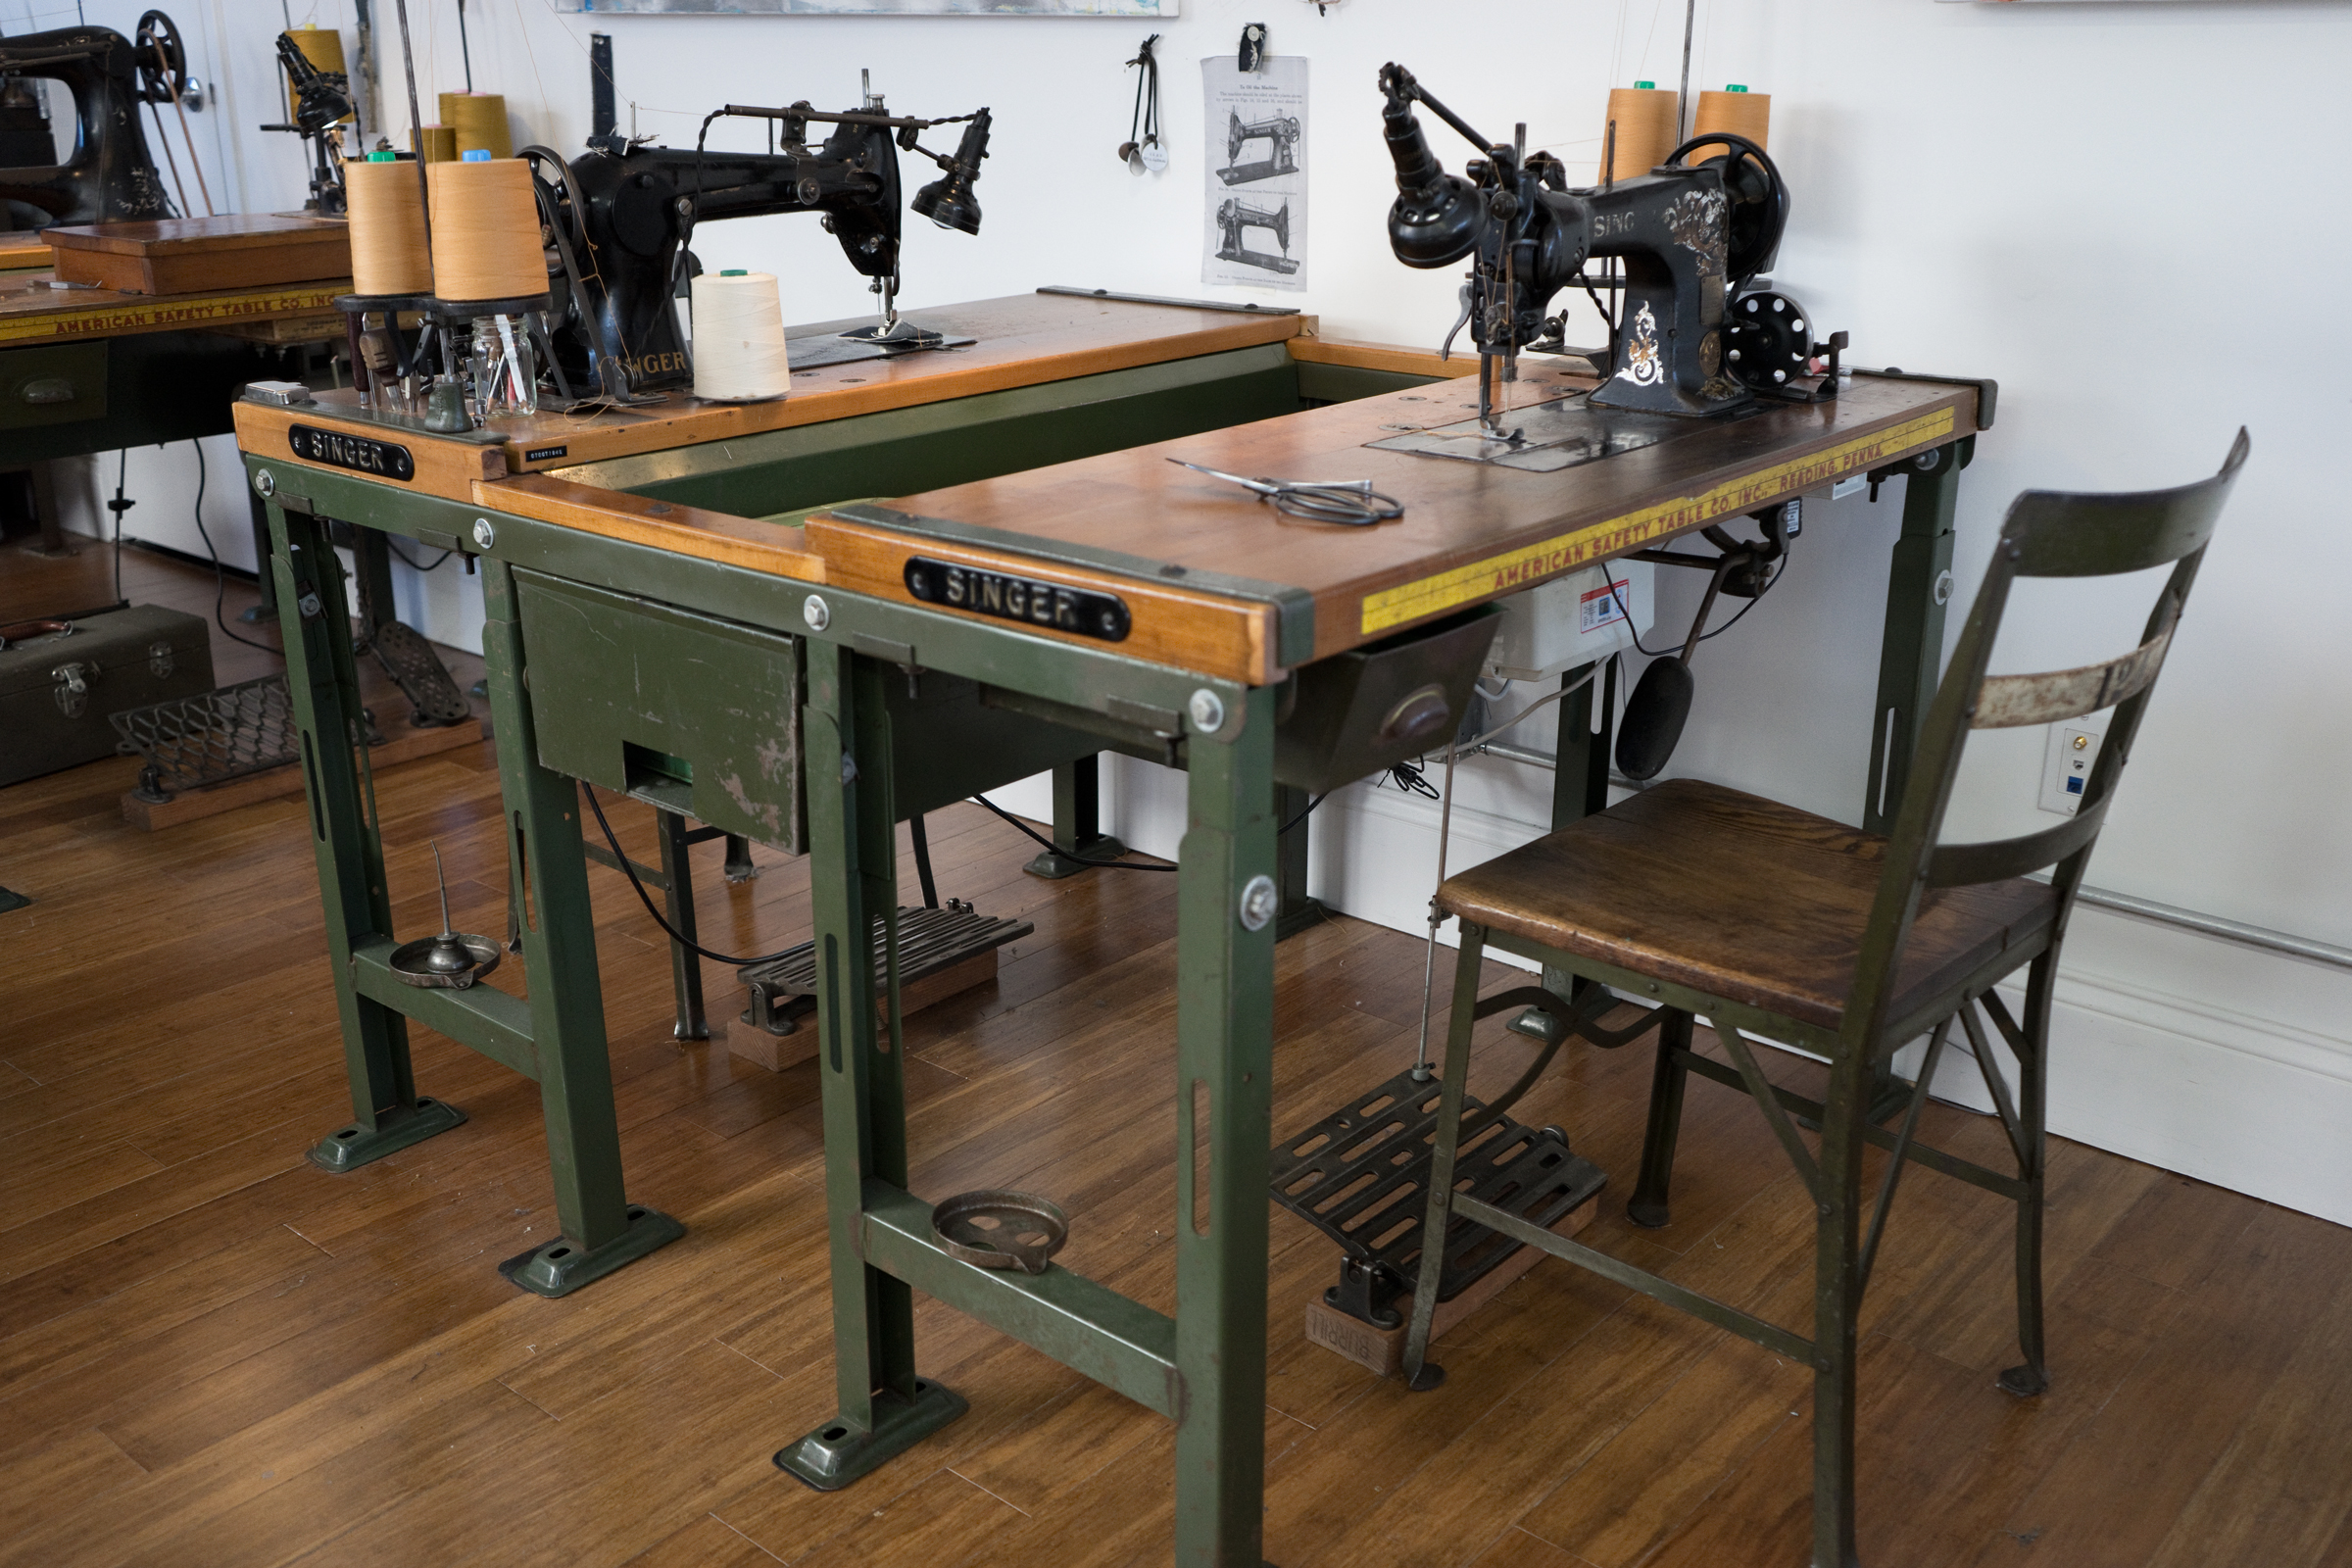 Power Sewing Tables